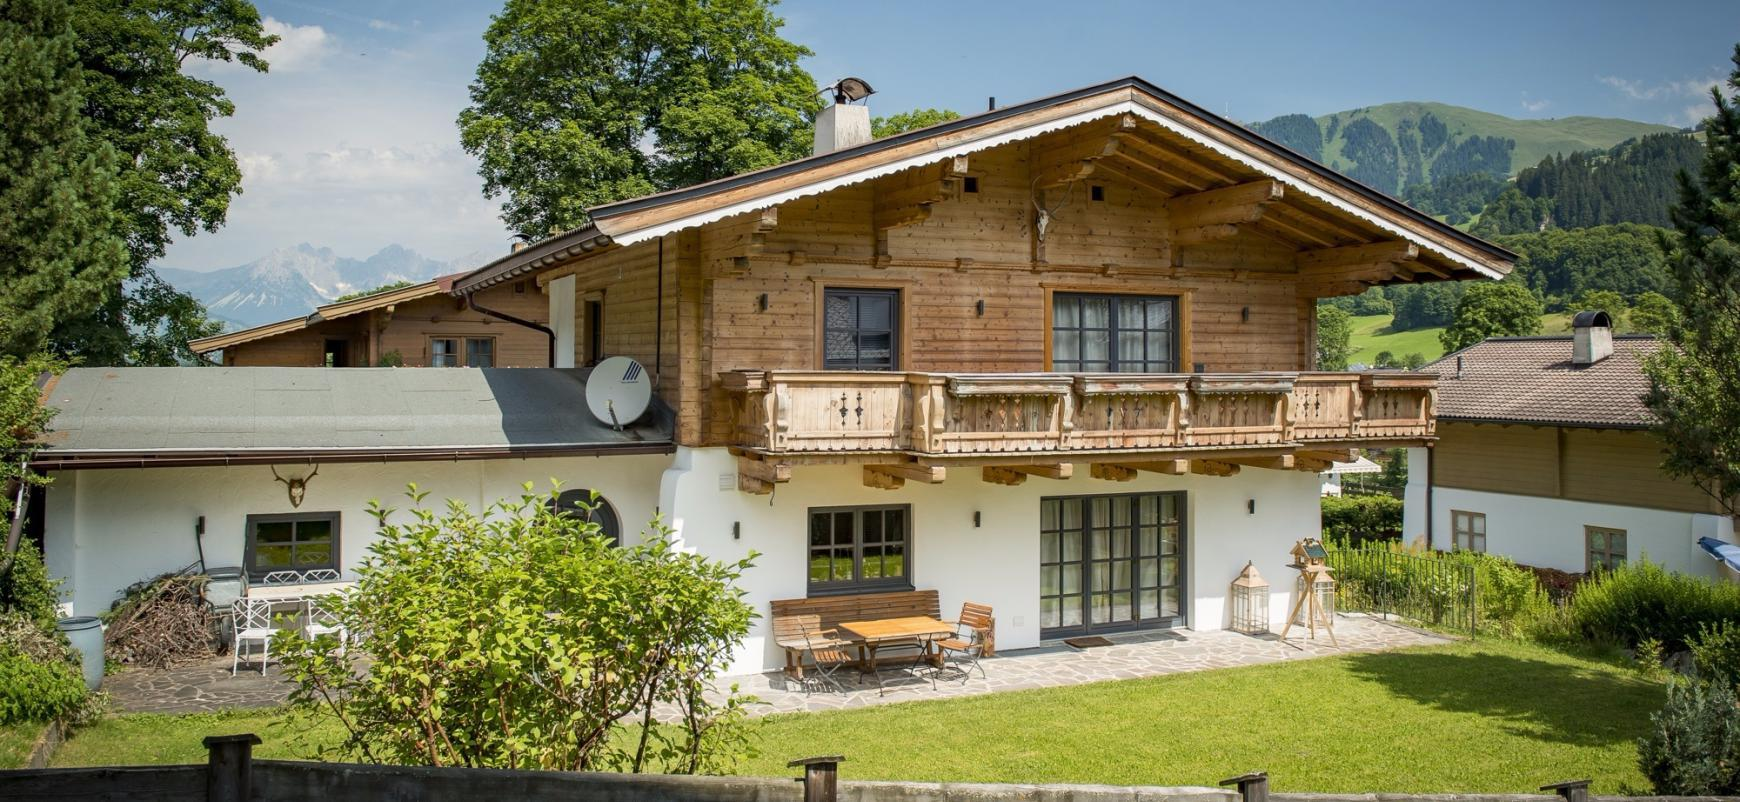 Charming chalet in Aurach bei Kitzbuhel for Sale